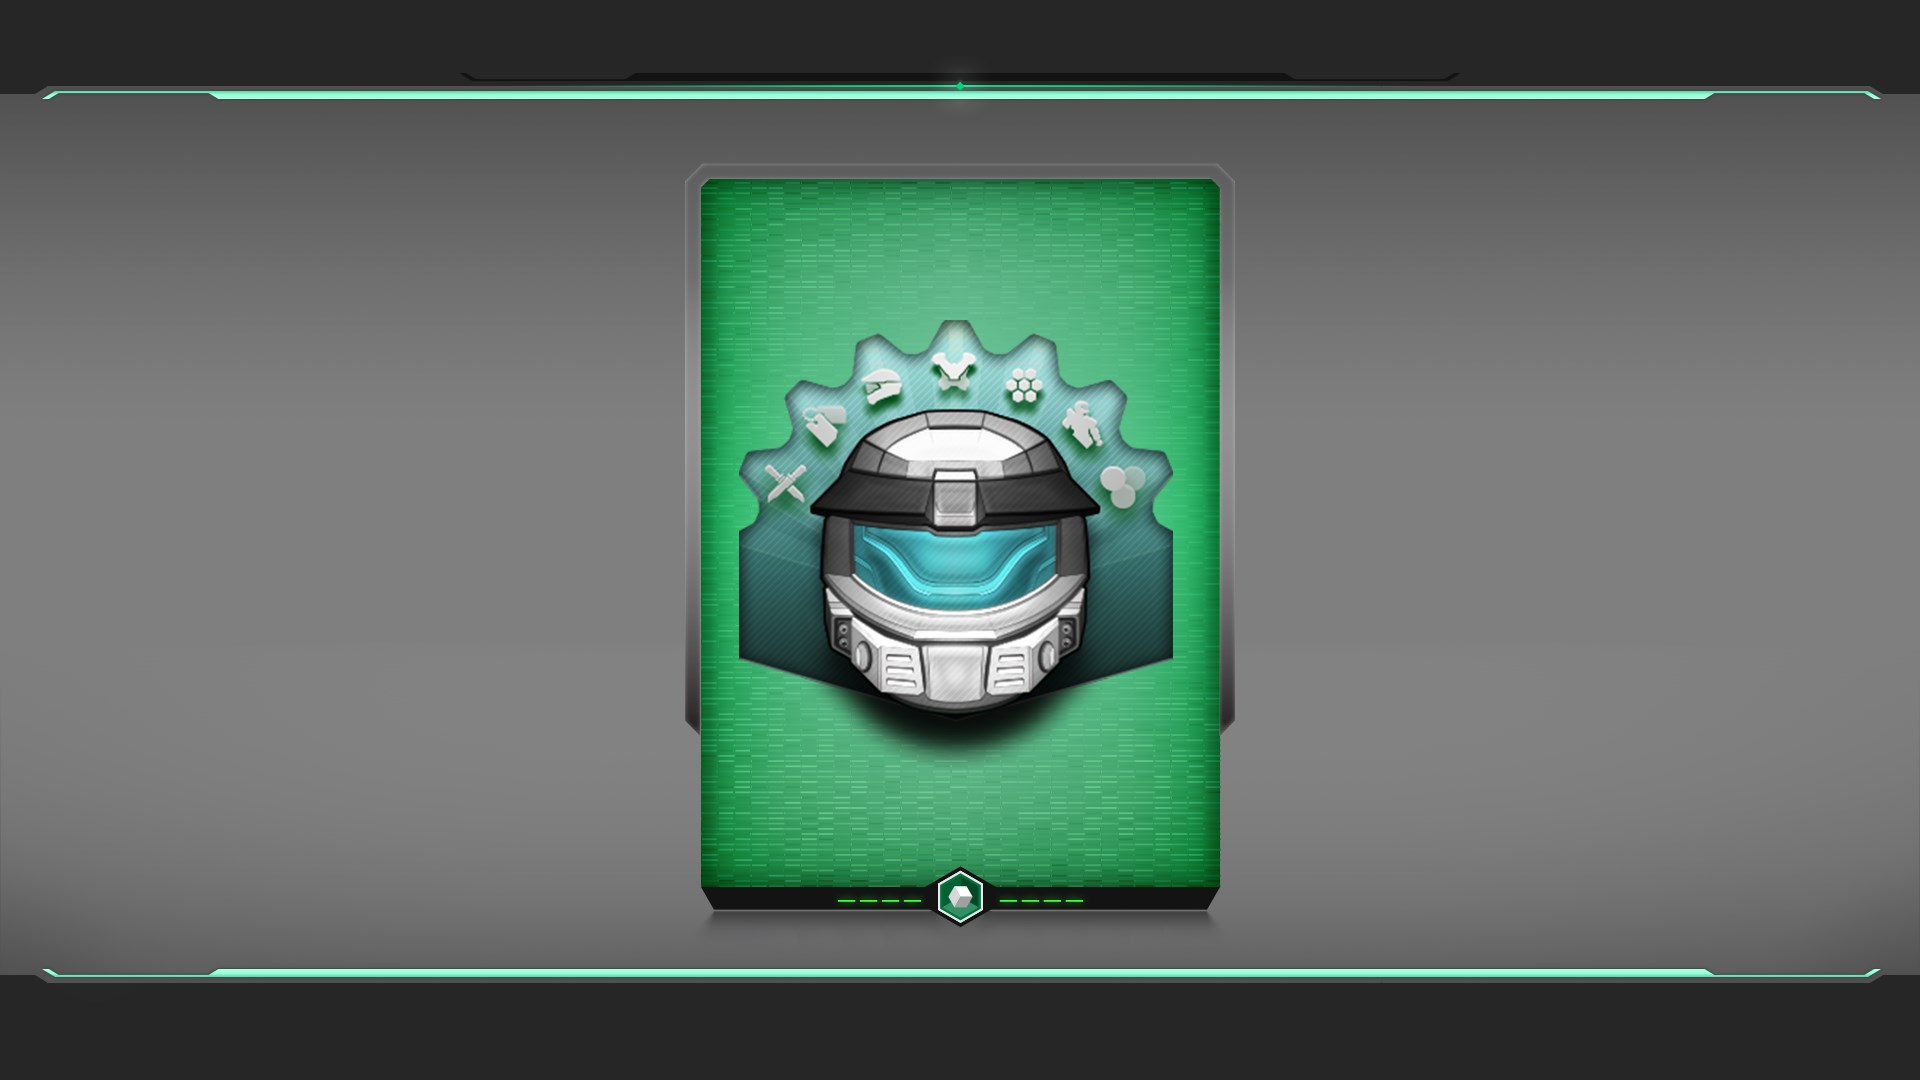 Halo 5: Guardians – Spartan's Armory REQ Pack